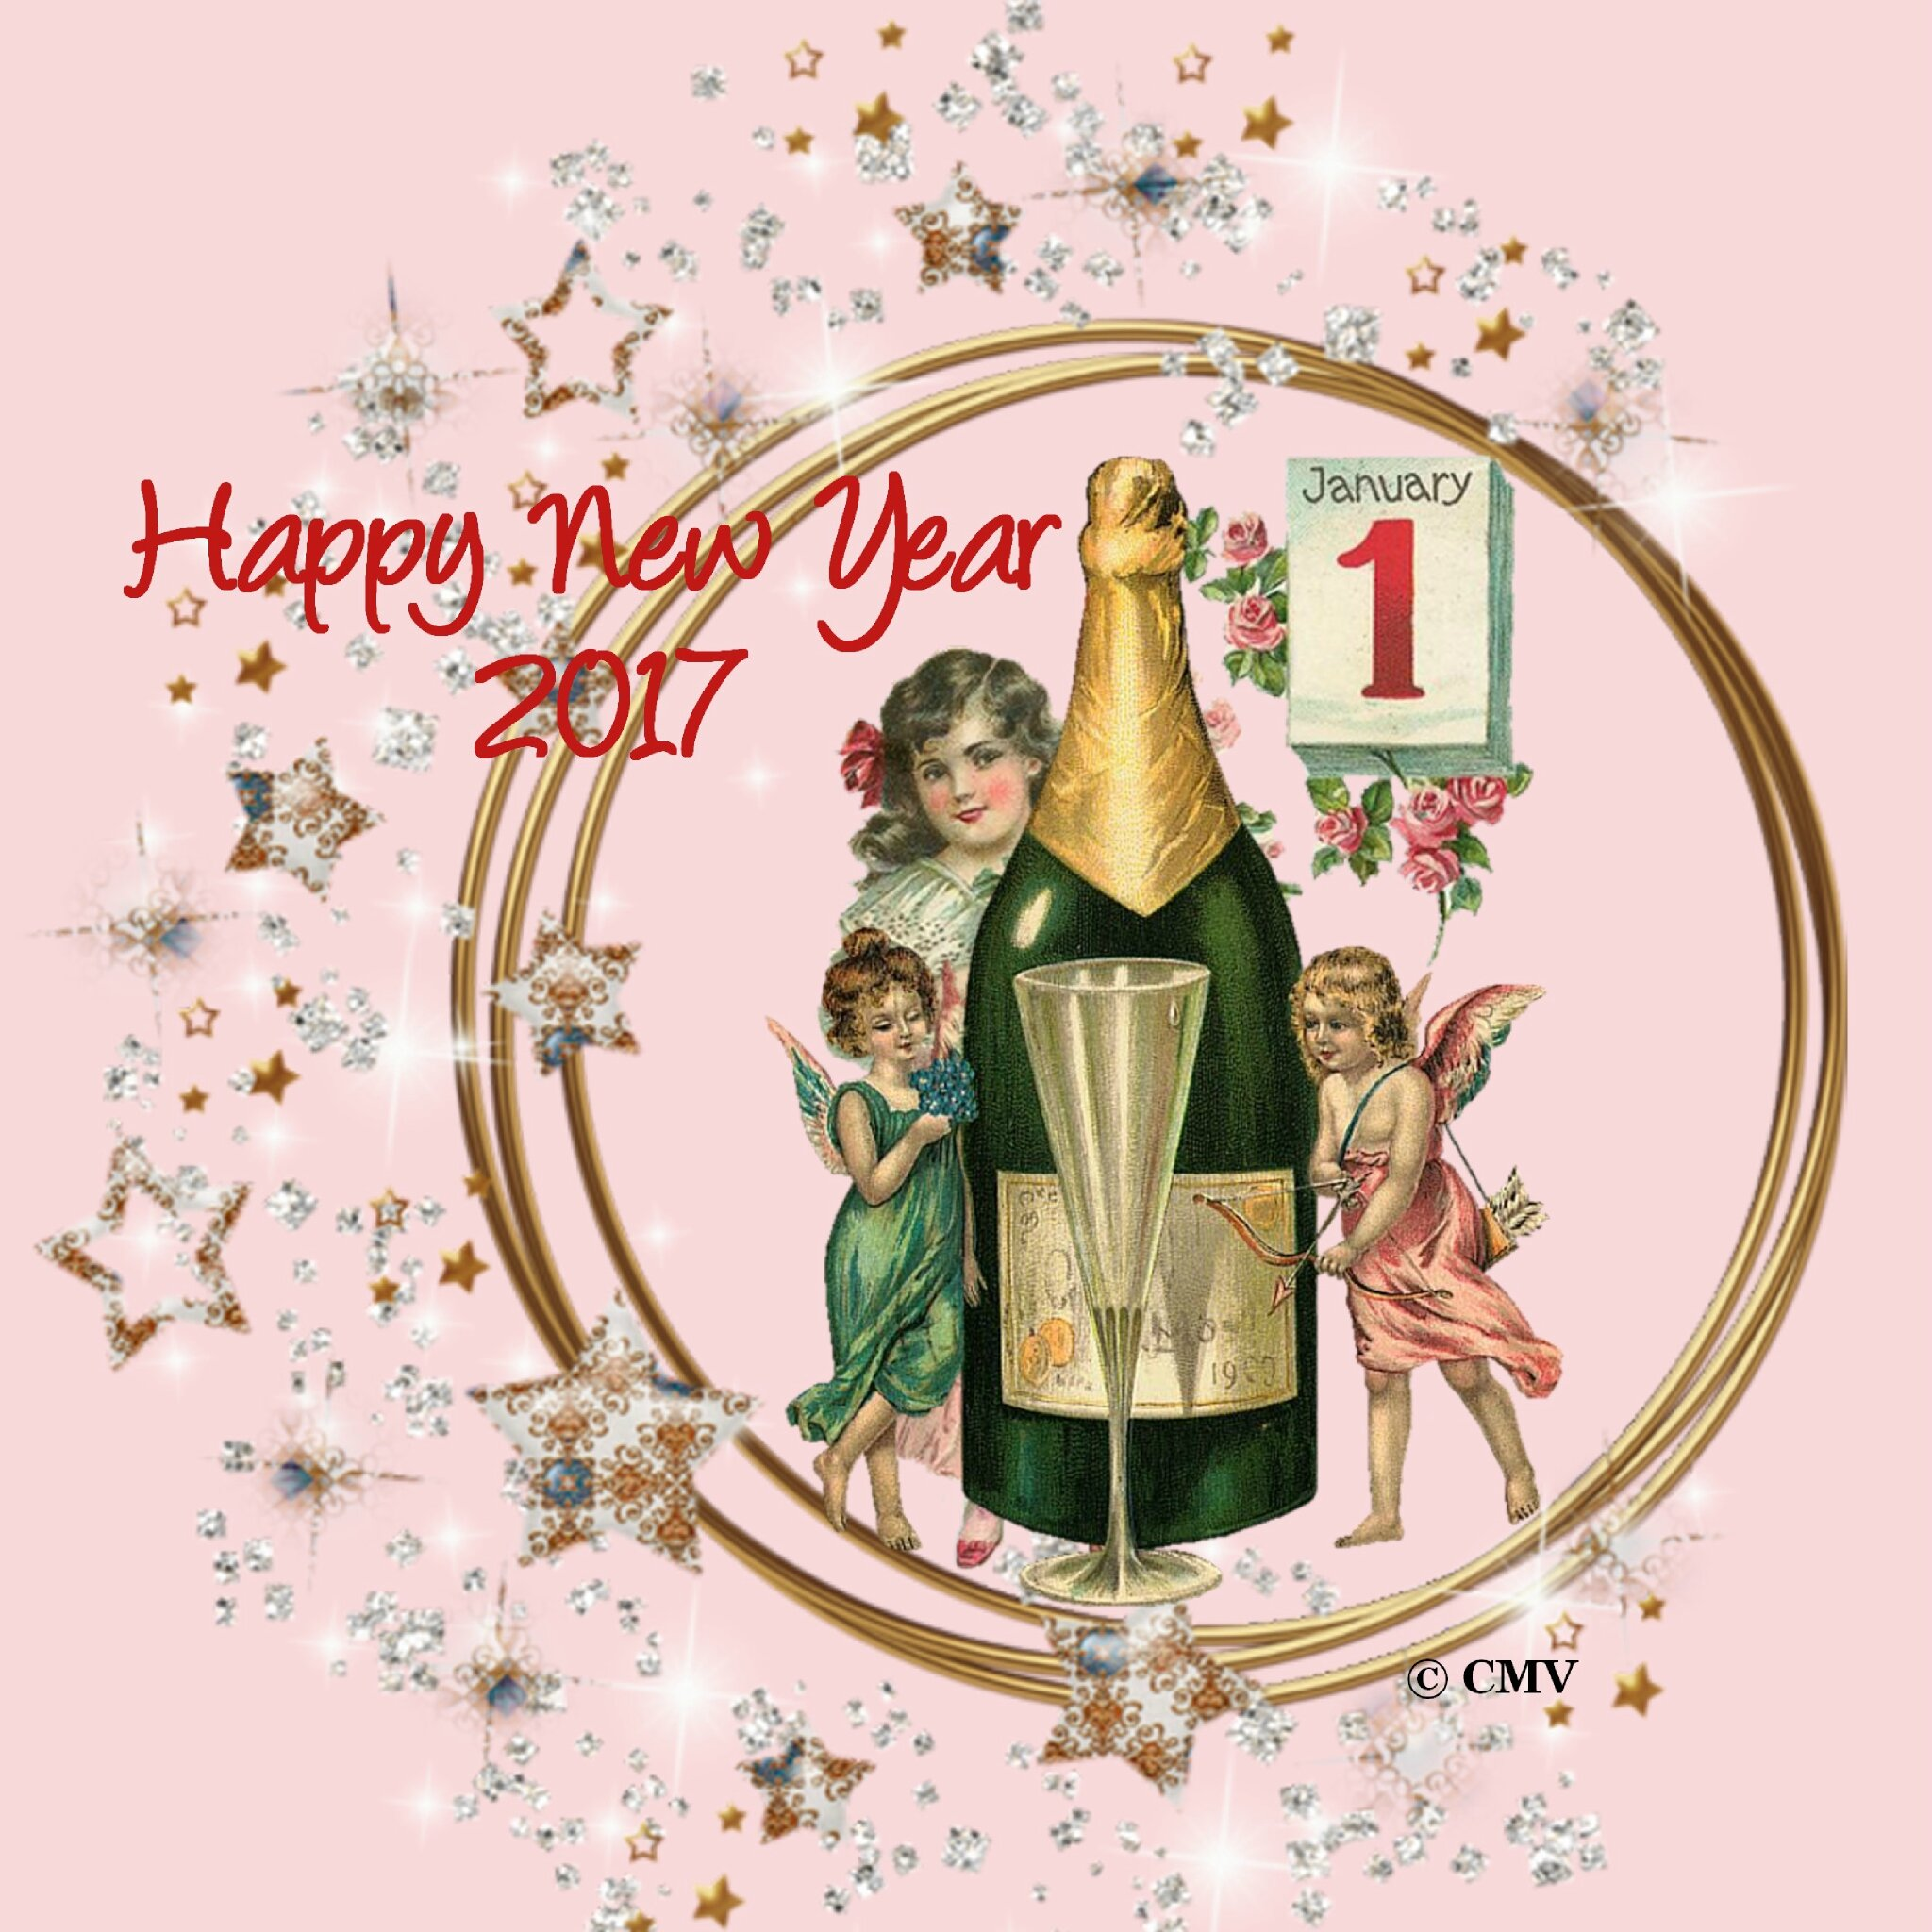 Salon Sugar Lyon 2016 Carte De Voeux Happy New Year 2017 En Anglais Les